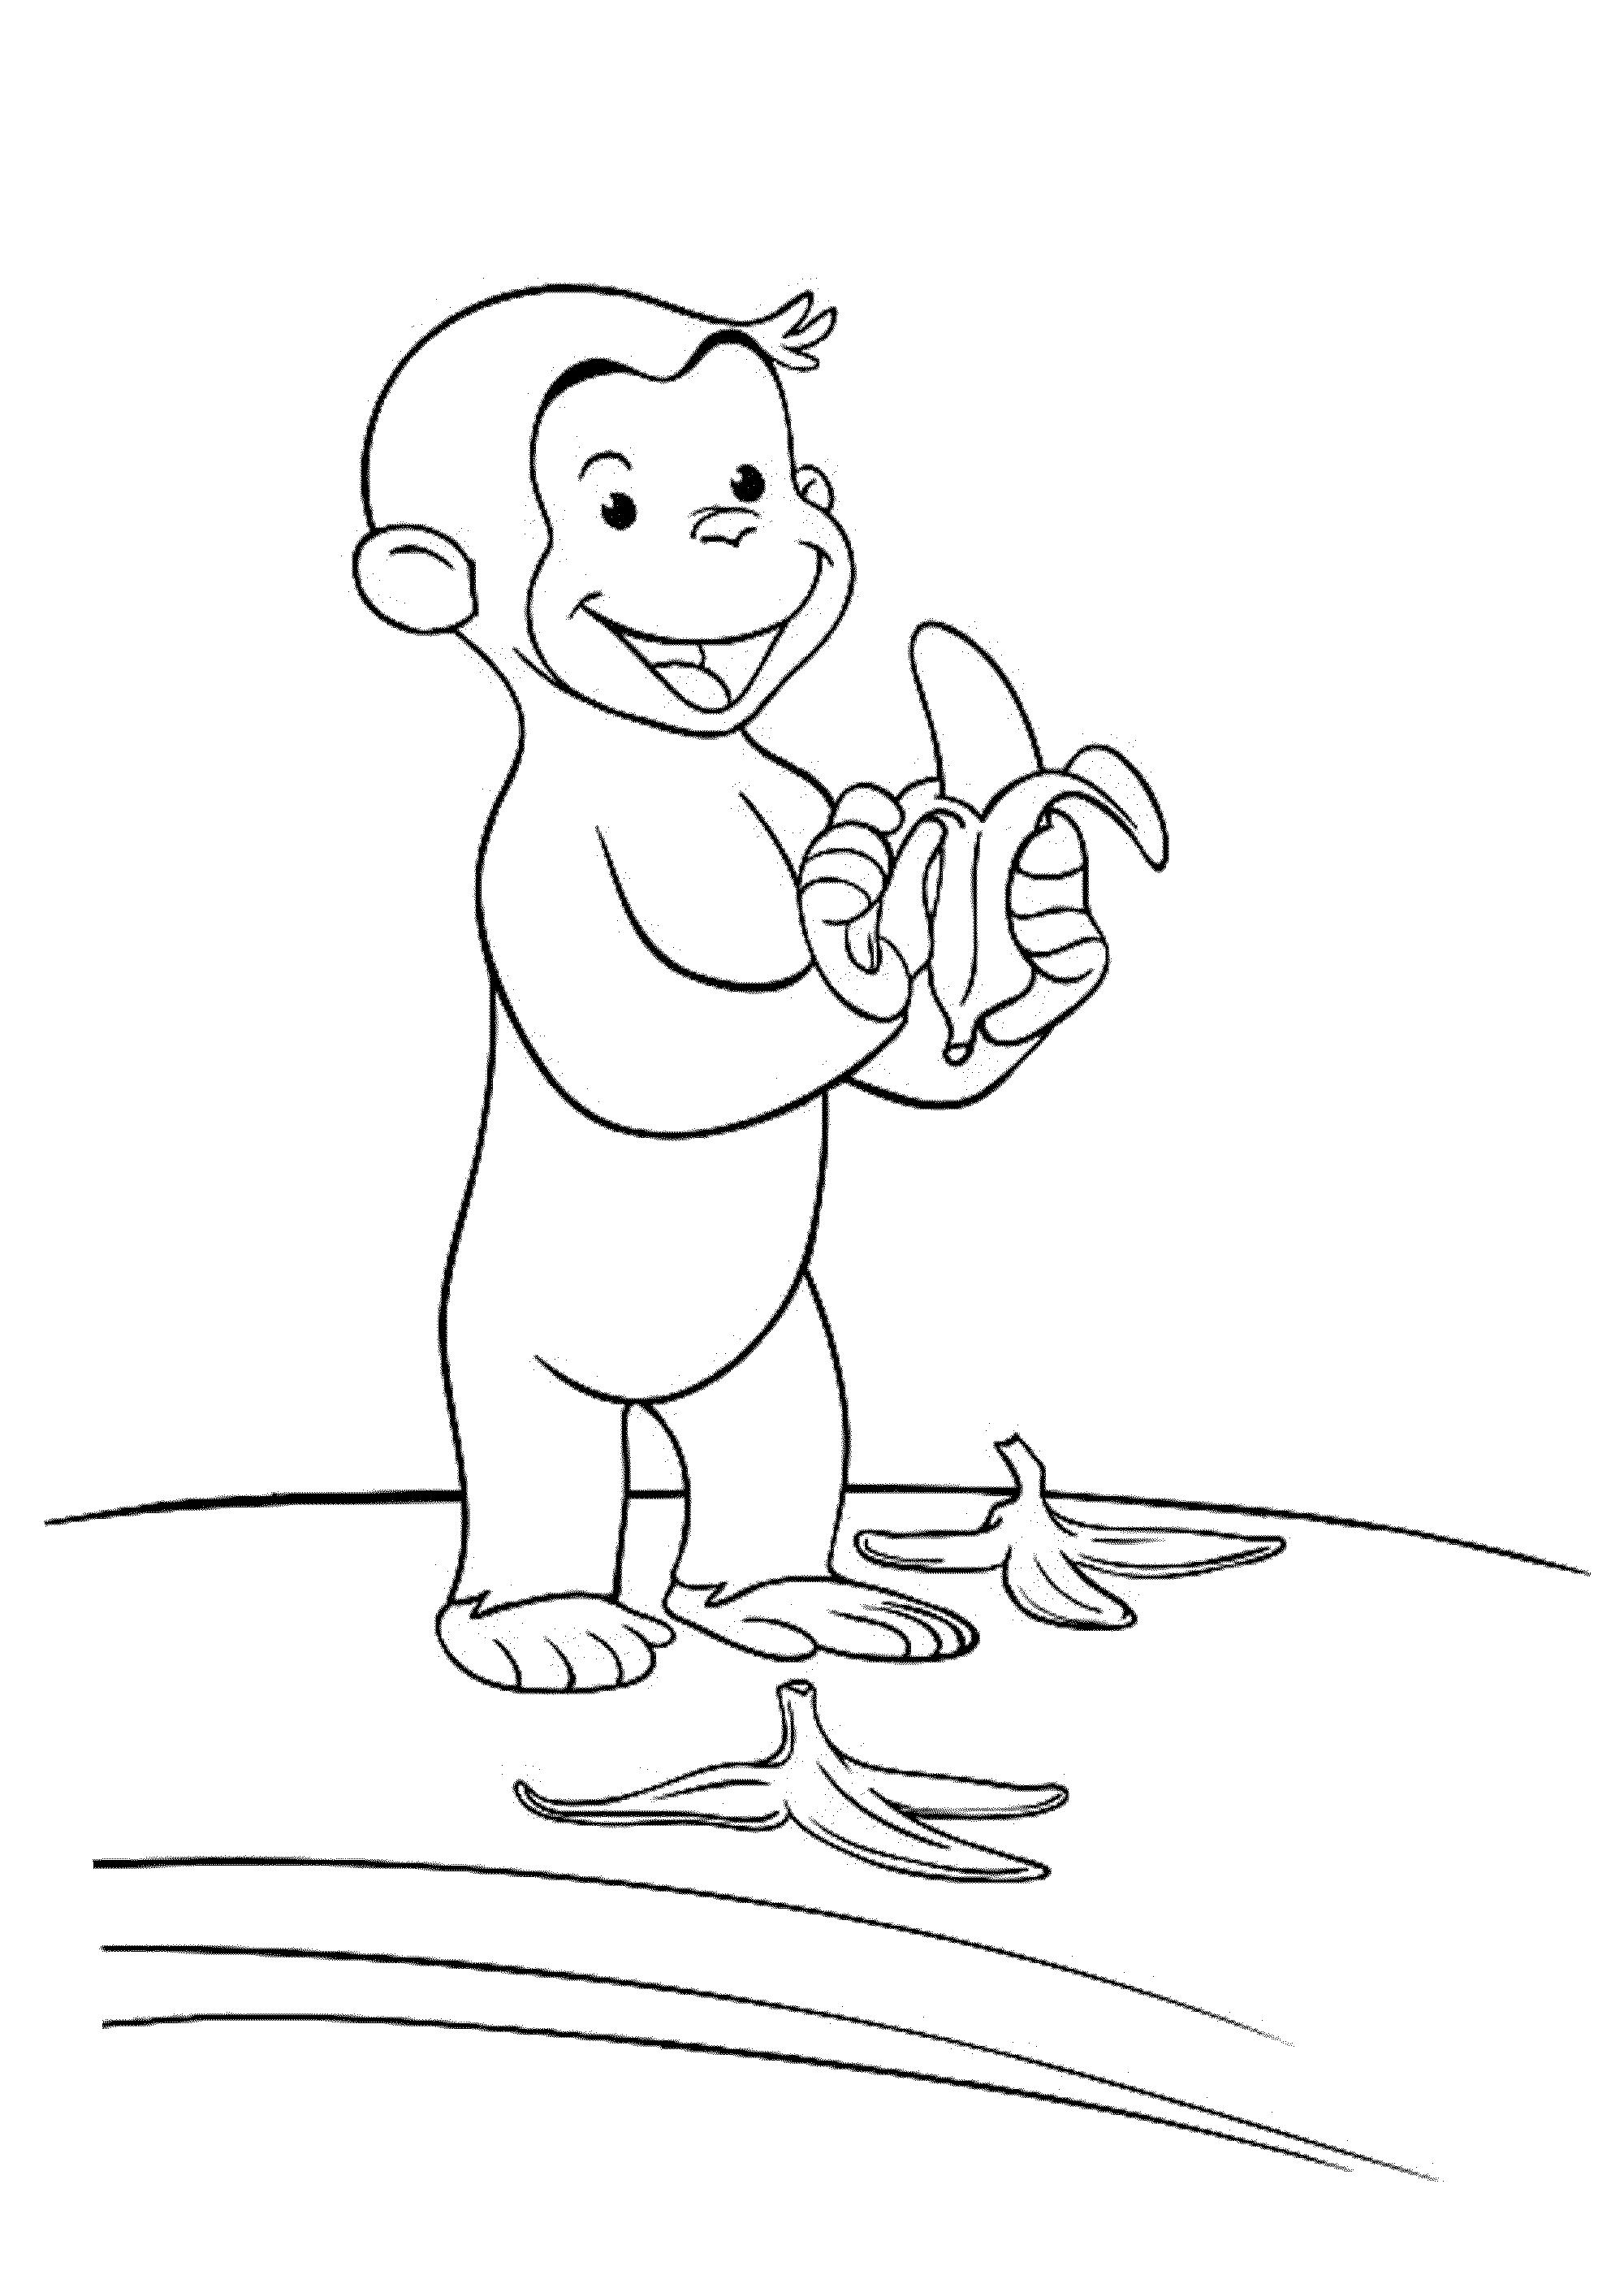 free printable curious george coloring pages print download curious george coloring pages to george pages coloring free printable curious